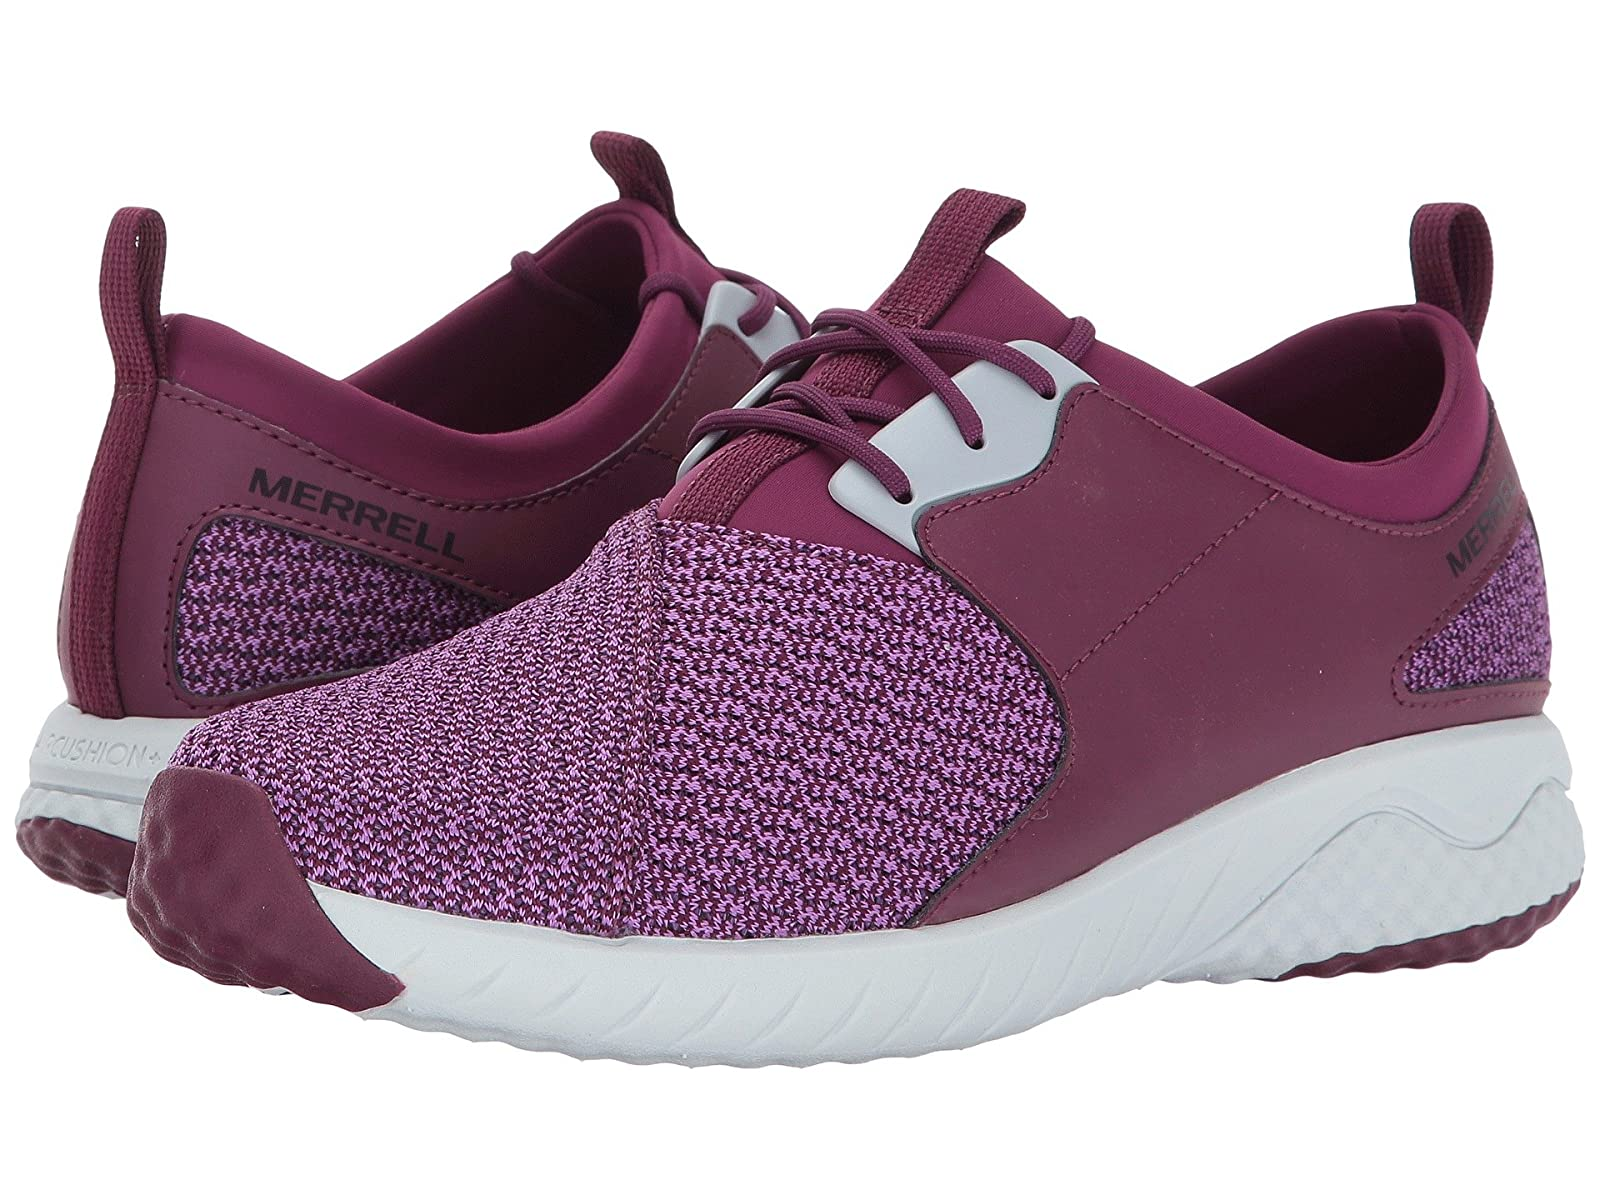 Merrell 1SIX8 Lace AC+Cheap and distinctive eye-catching shoes